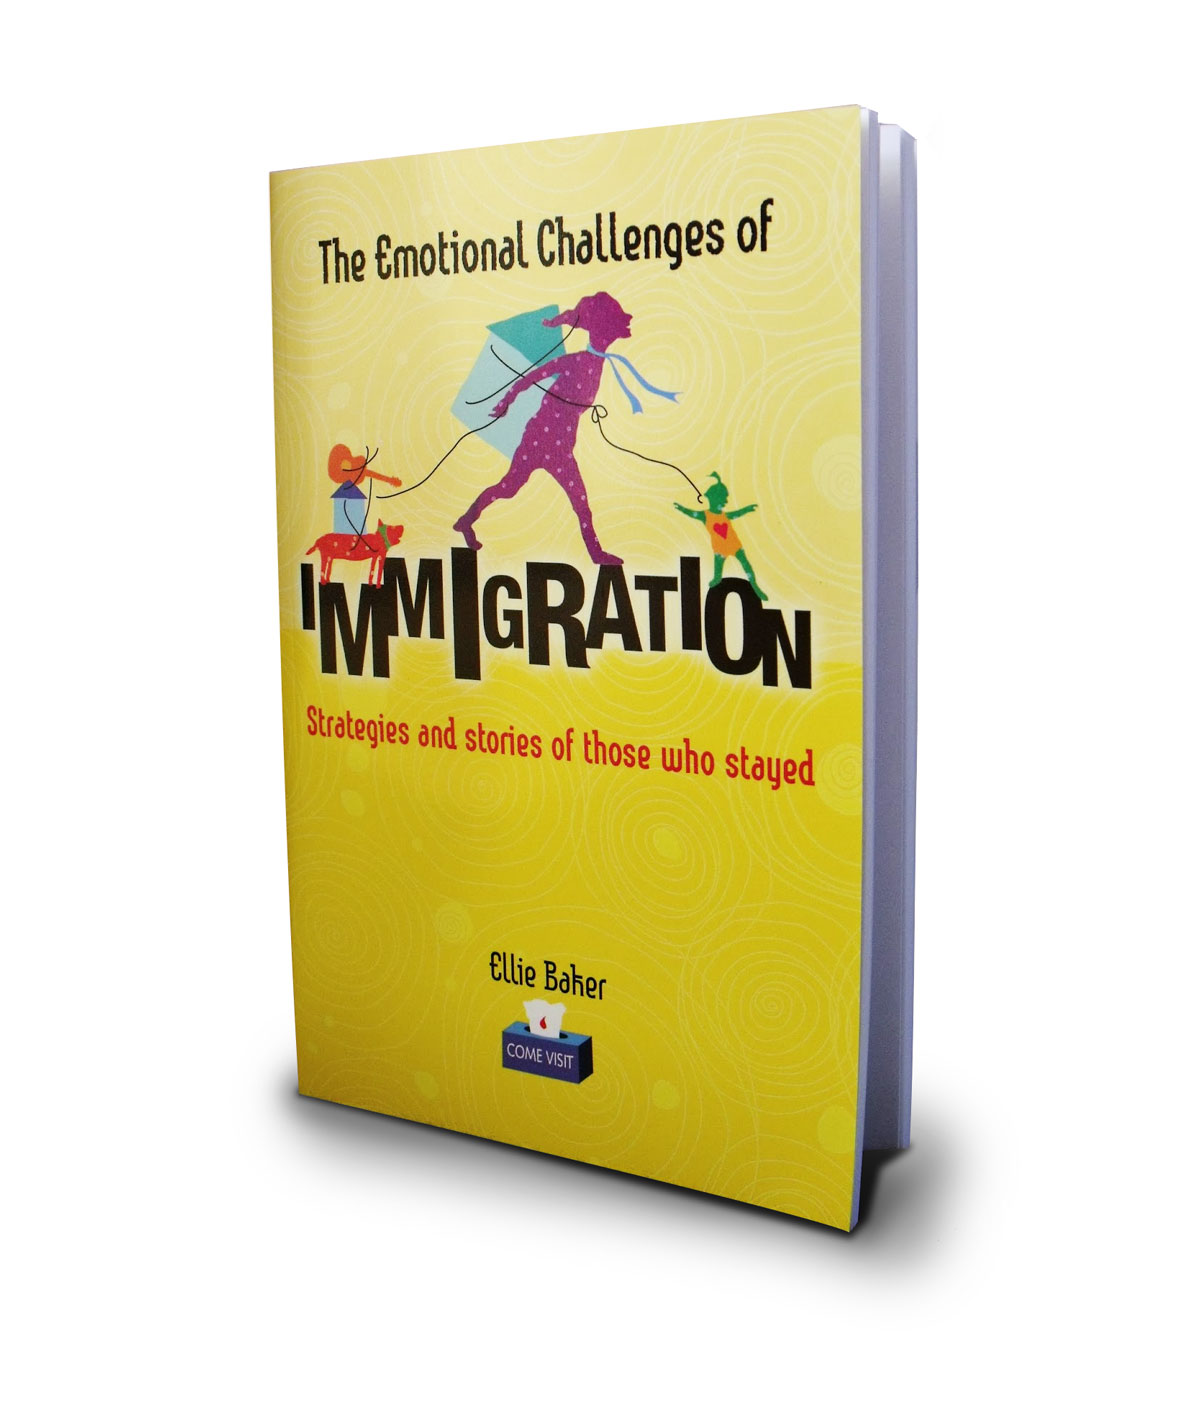 image of migrant emotions book by ellie baker